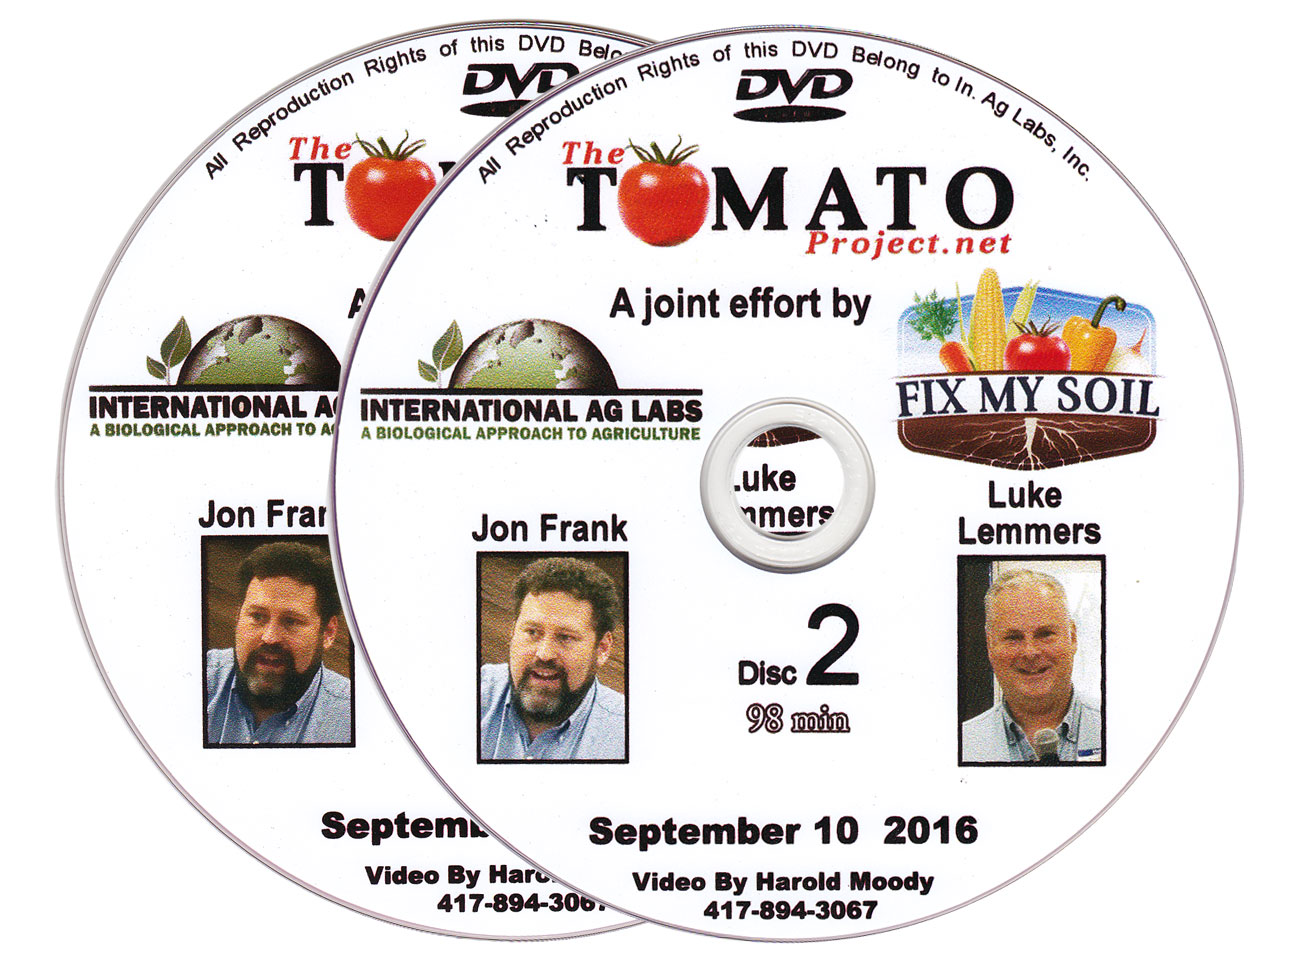 tomato-project-dvds.jpg